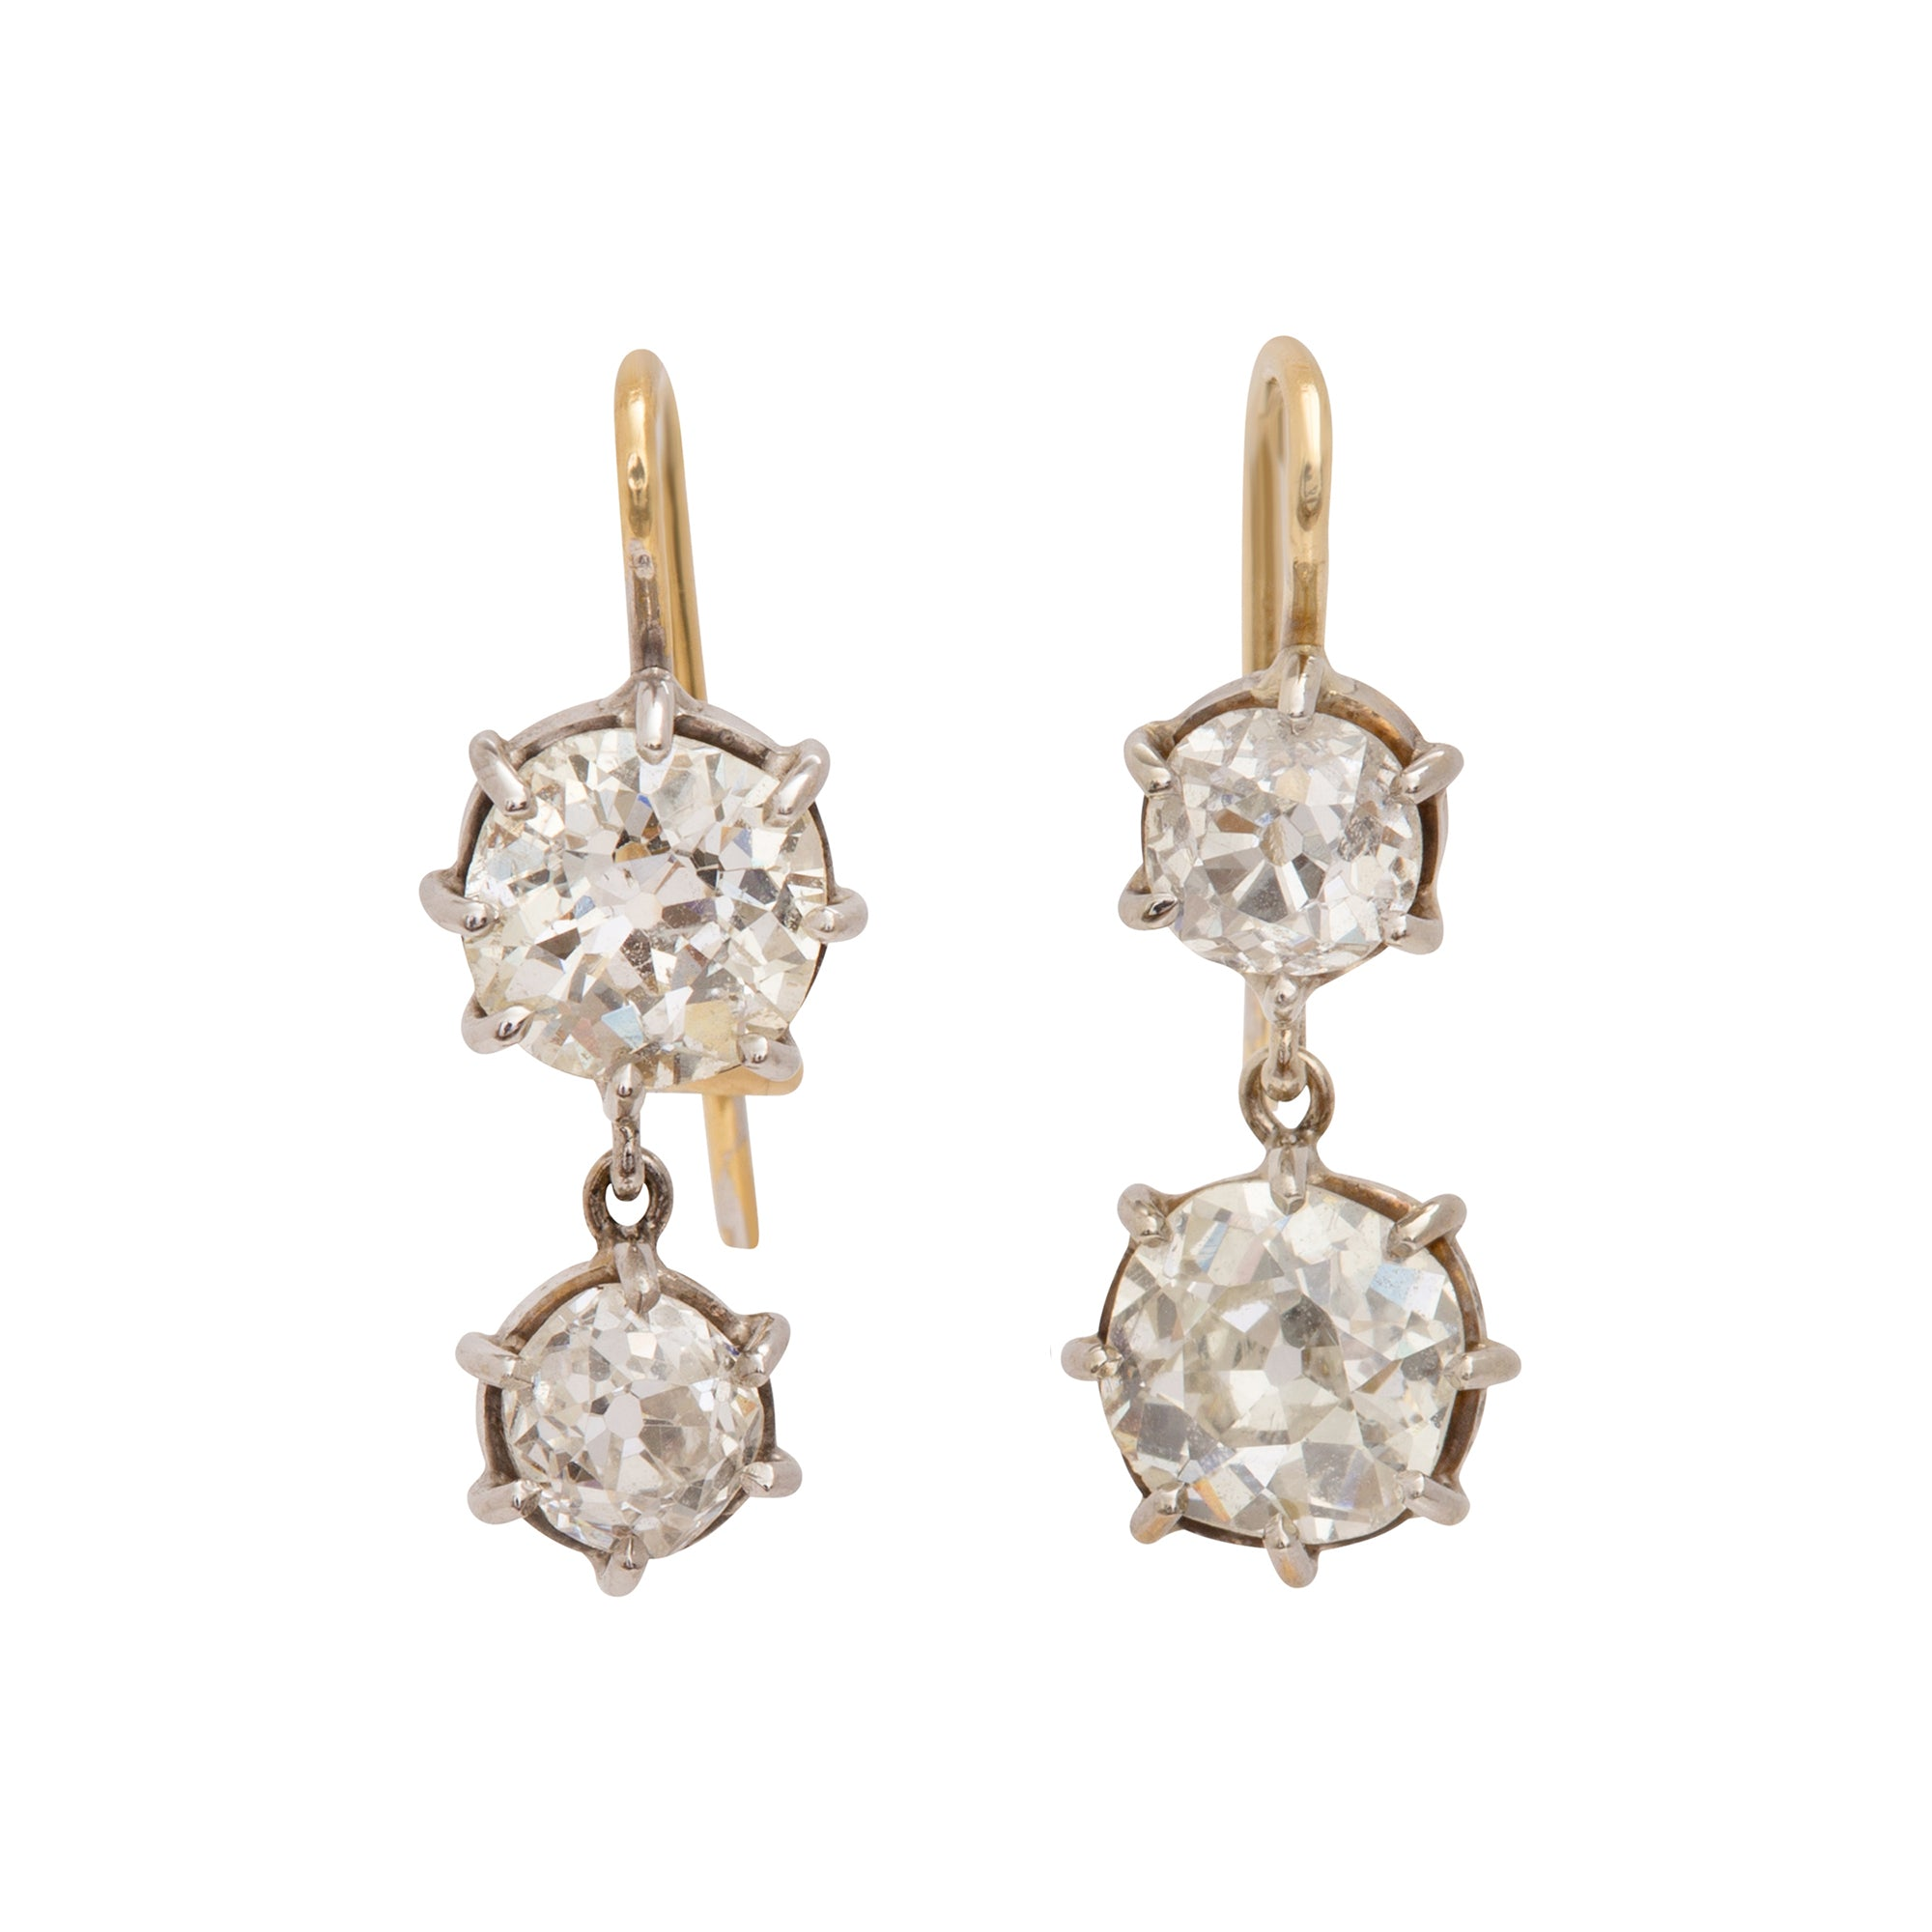 Antique Diamond Earrings by Renee Lewis for Broken English Jewelry